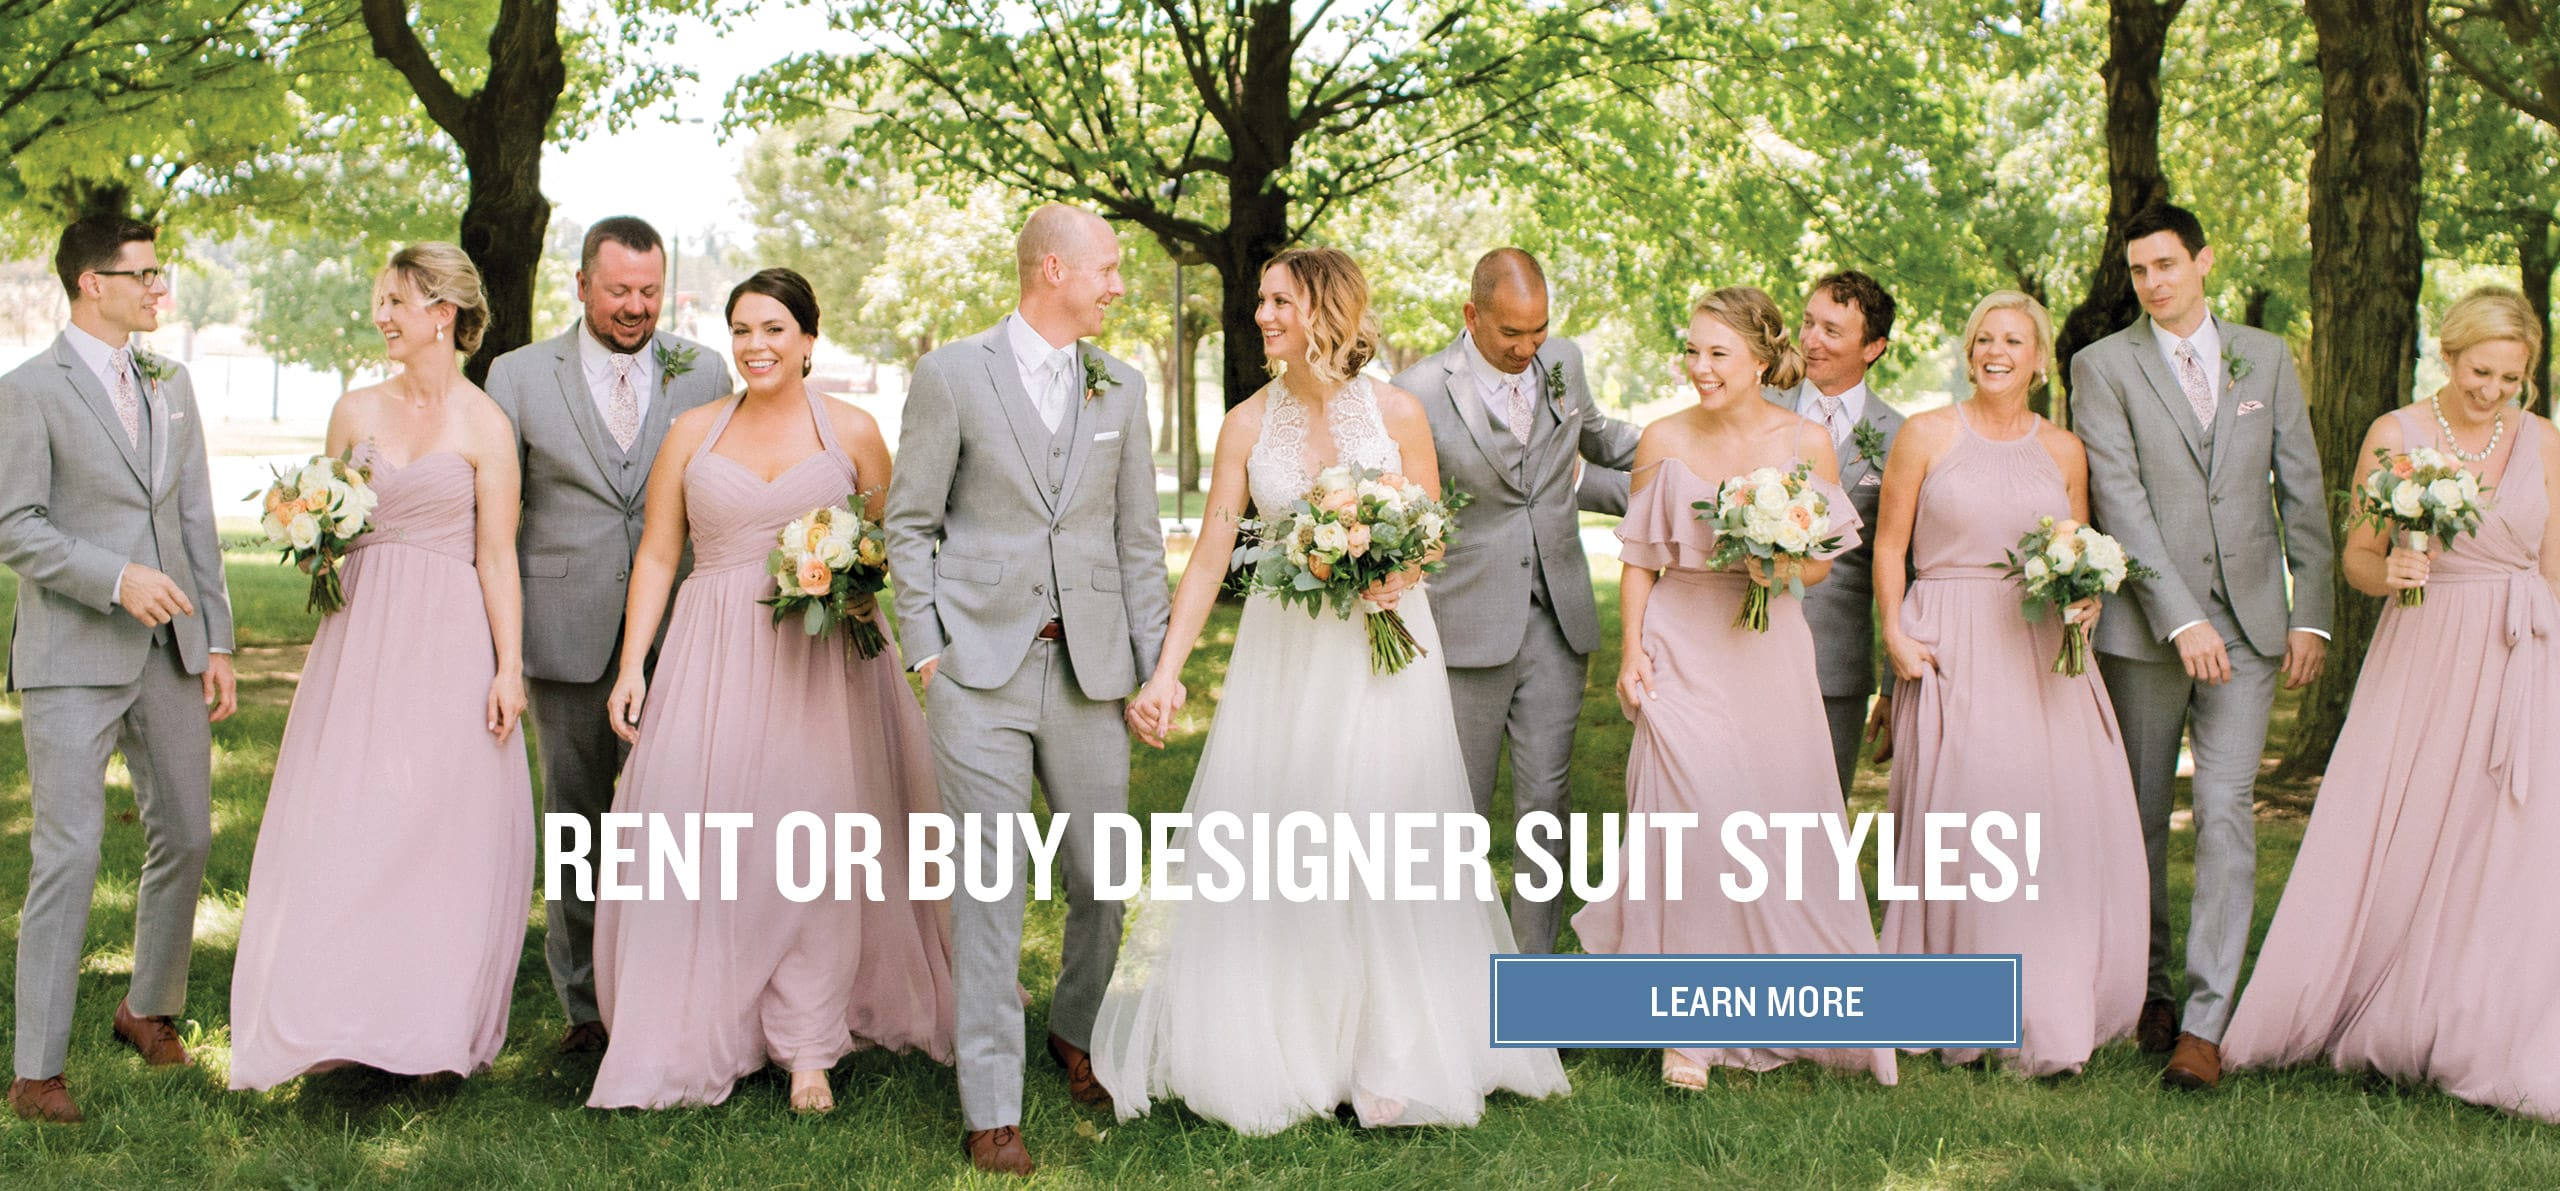 Rent or Buy Suits